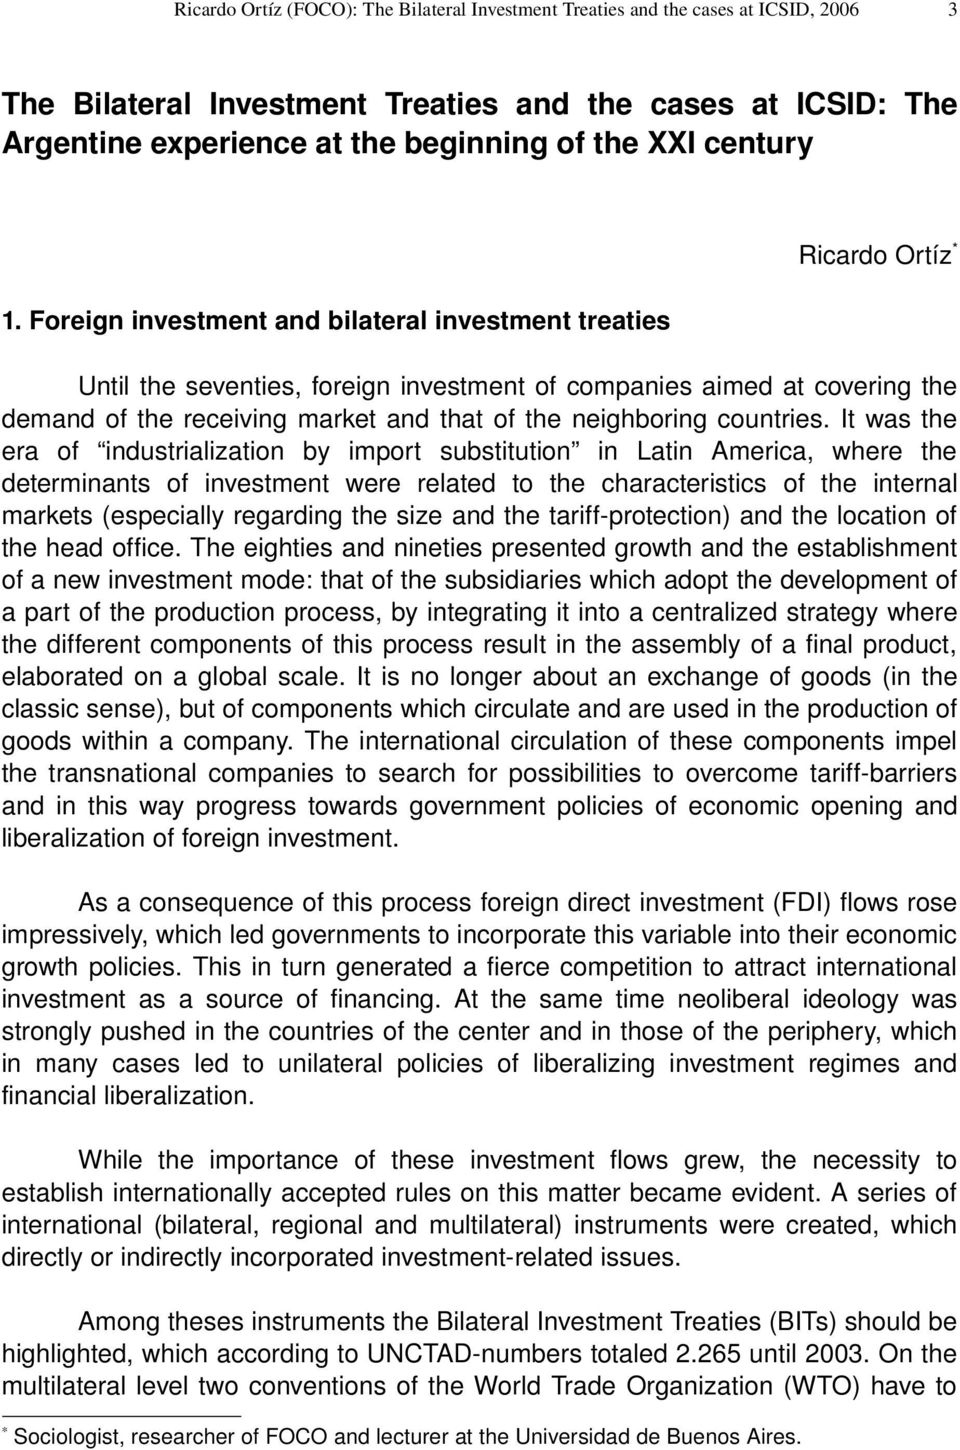 Foreign investment and bilateral investment treaties Ricardo Ortíz * Until the seventies, foreign investment of companies aimed at covering the demand of the receiving market and that of the